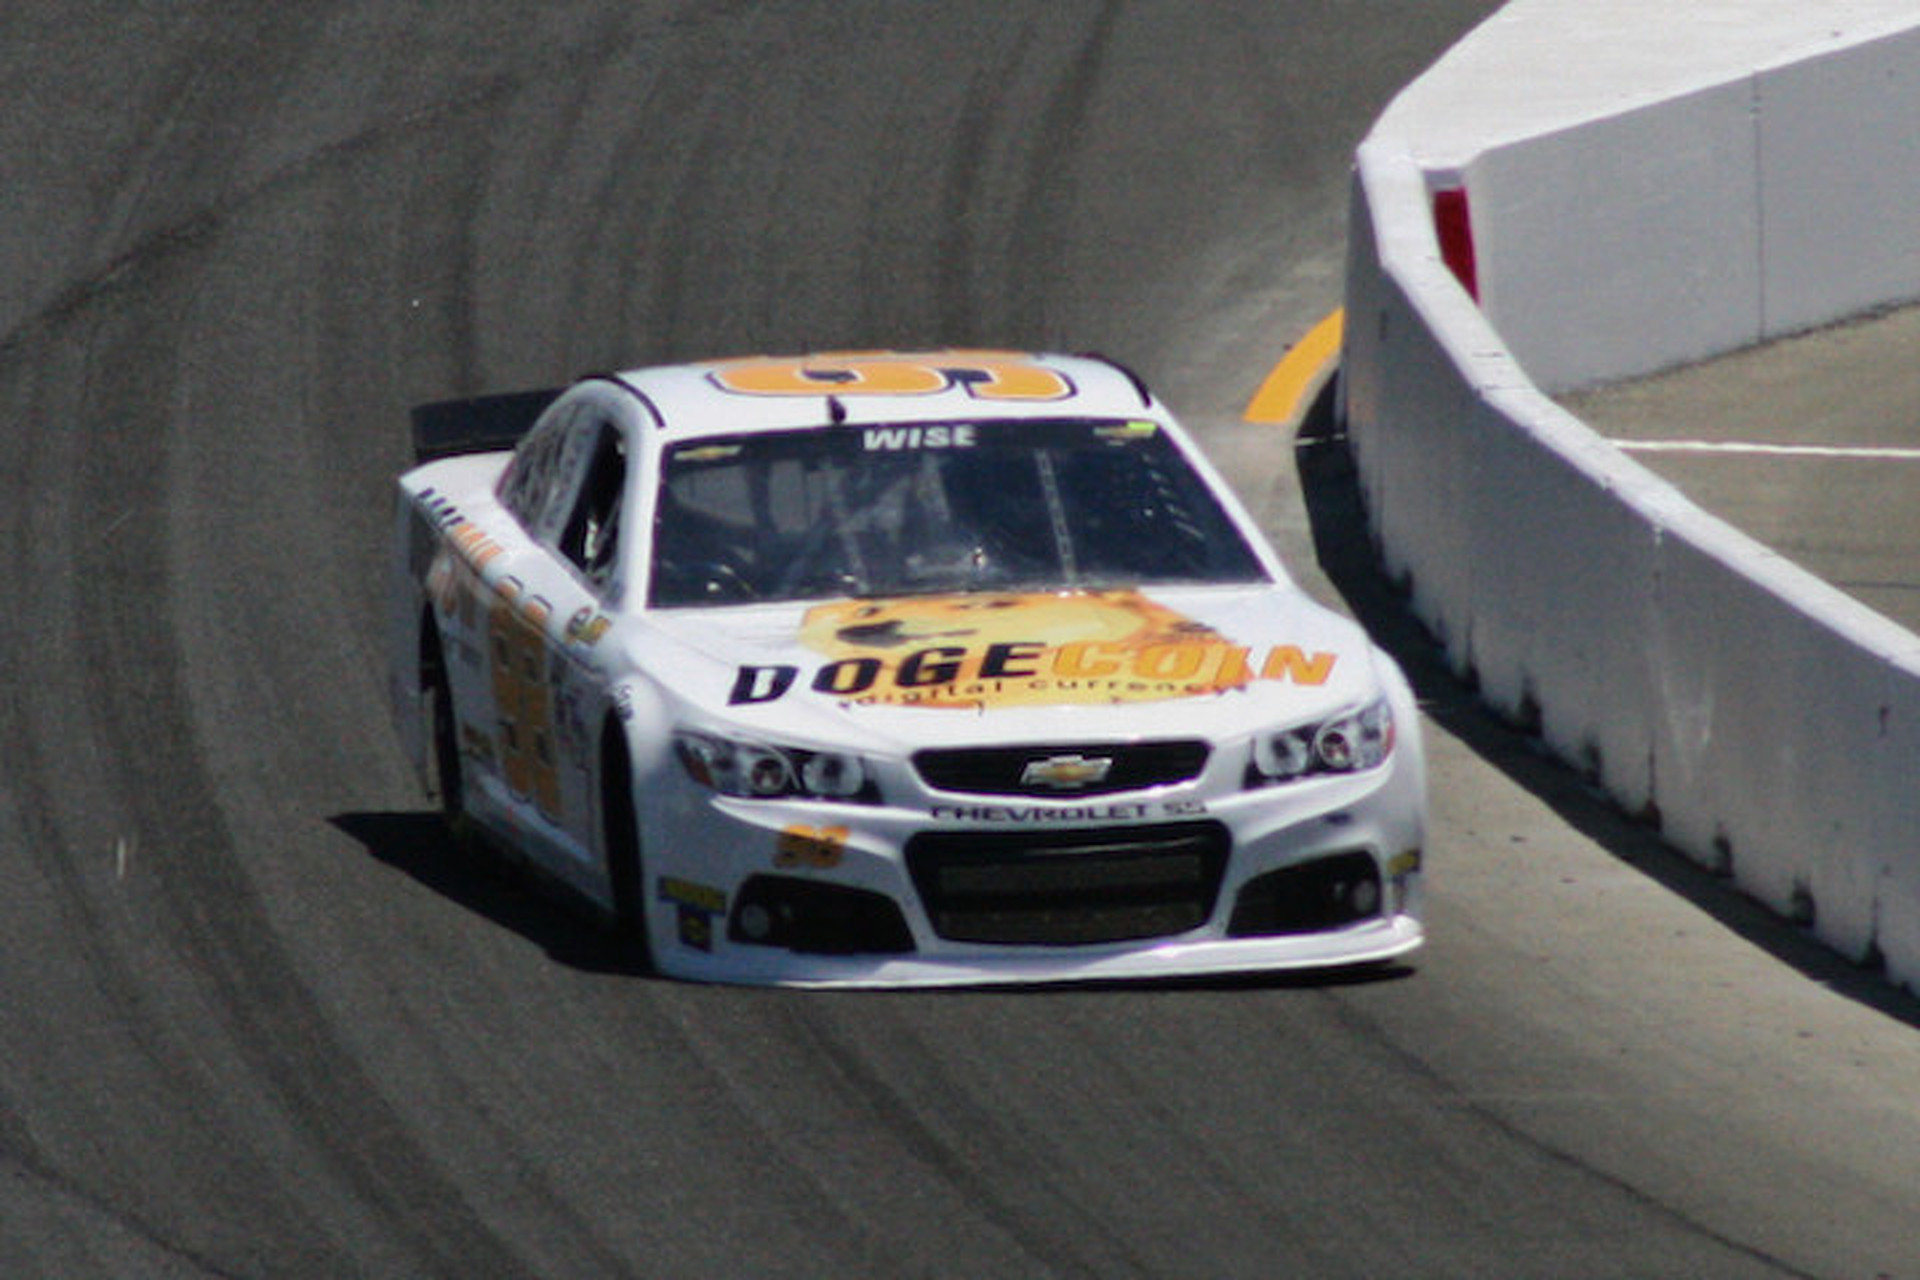 Wow: Josh Wise and Dogecar Return to NASCAR Grid at Sonoma